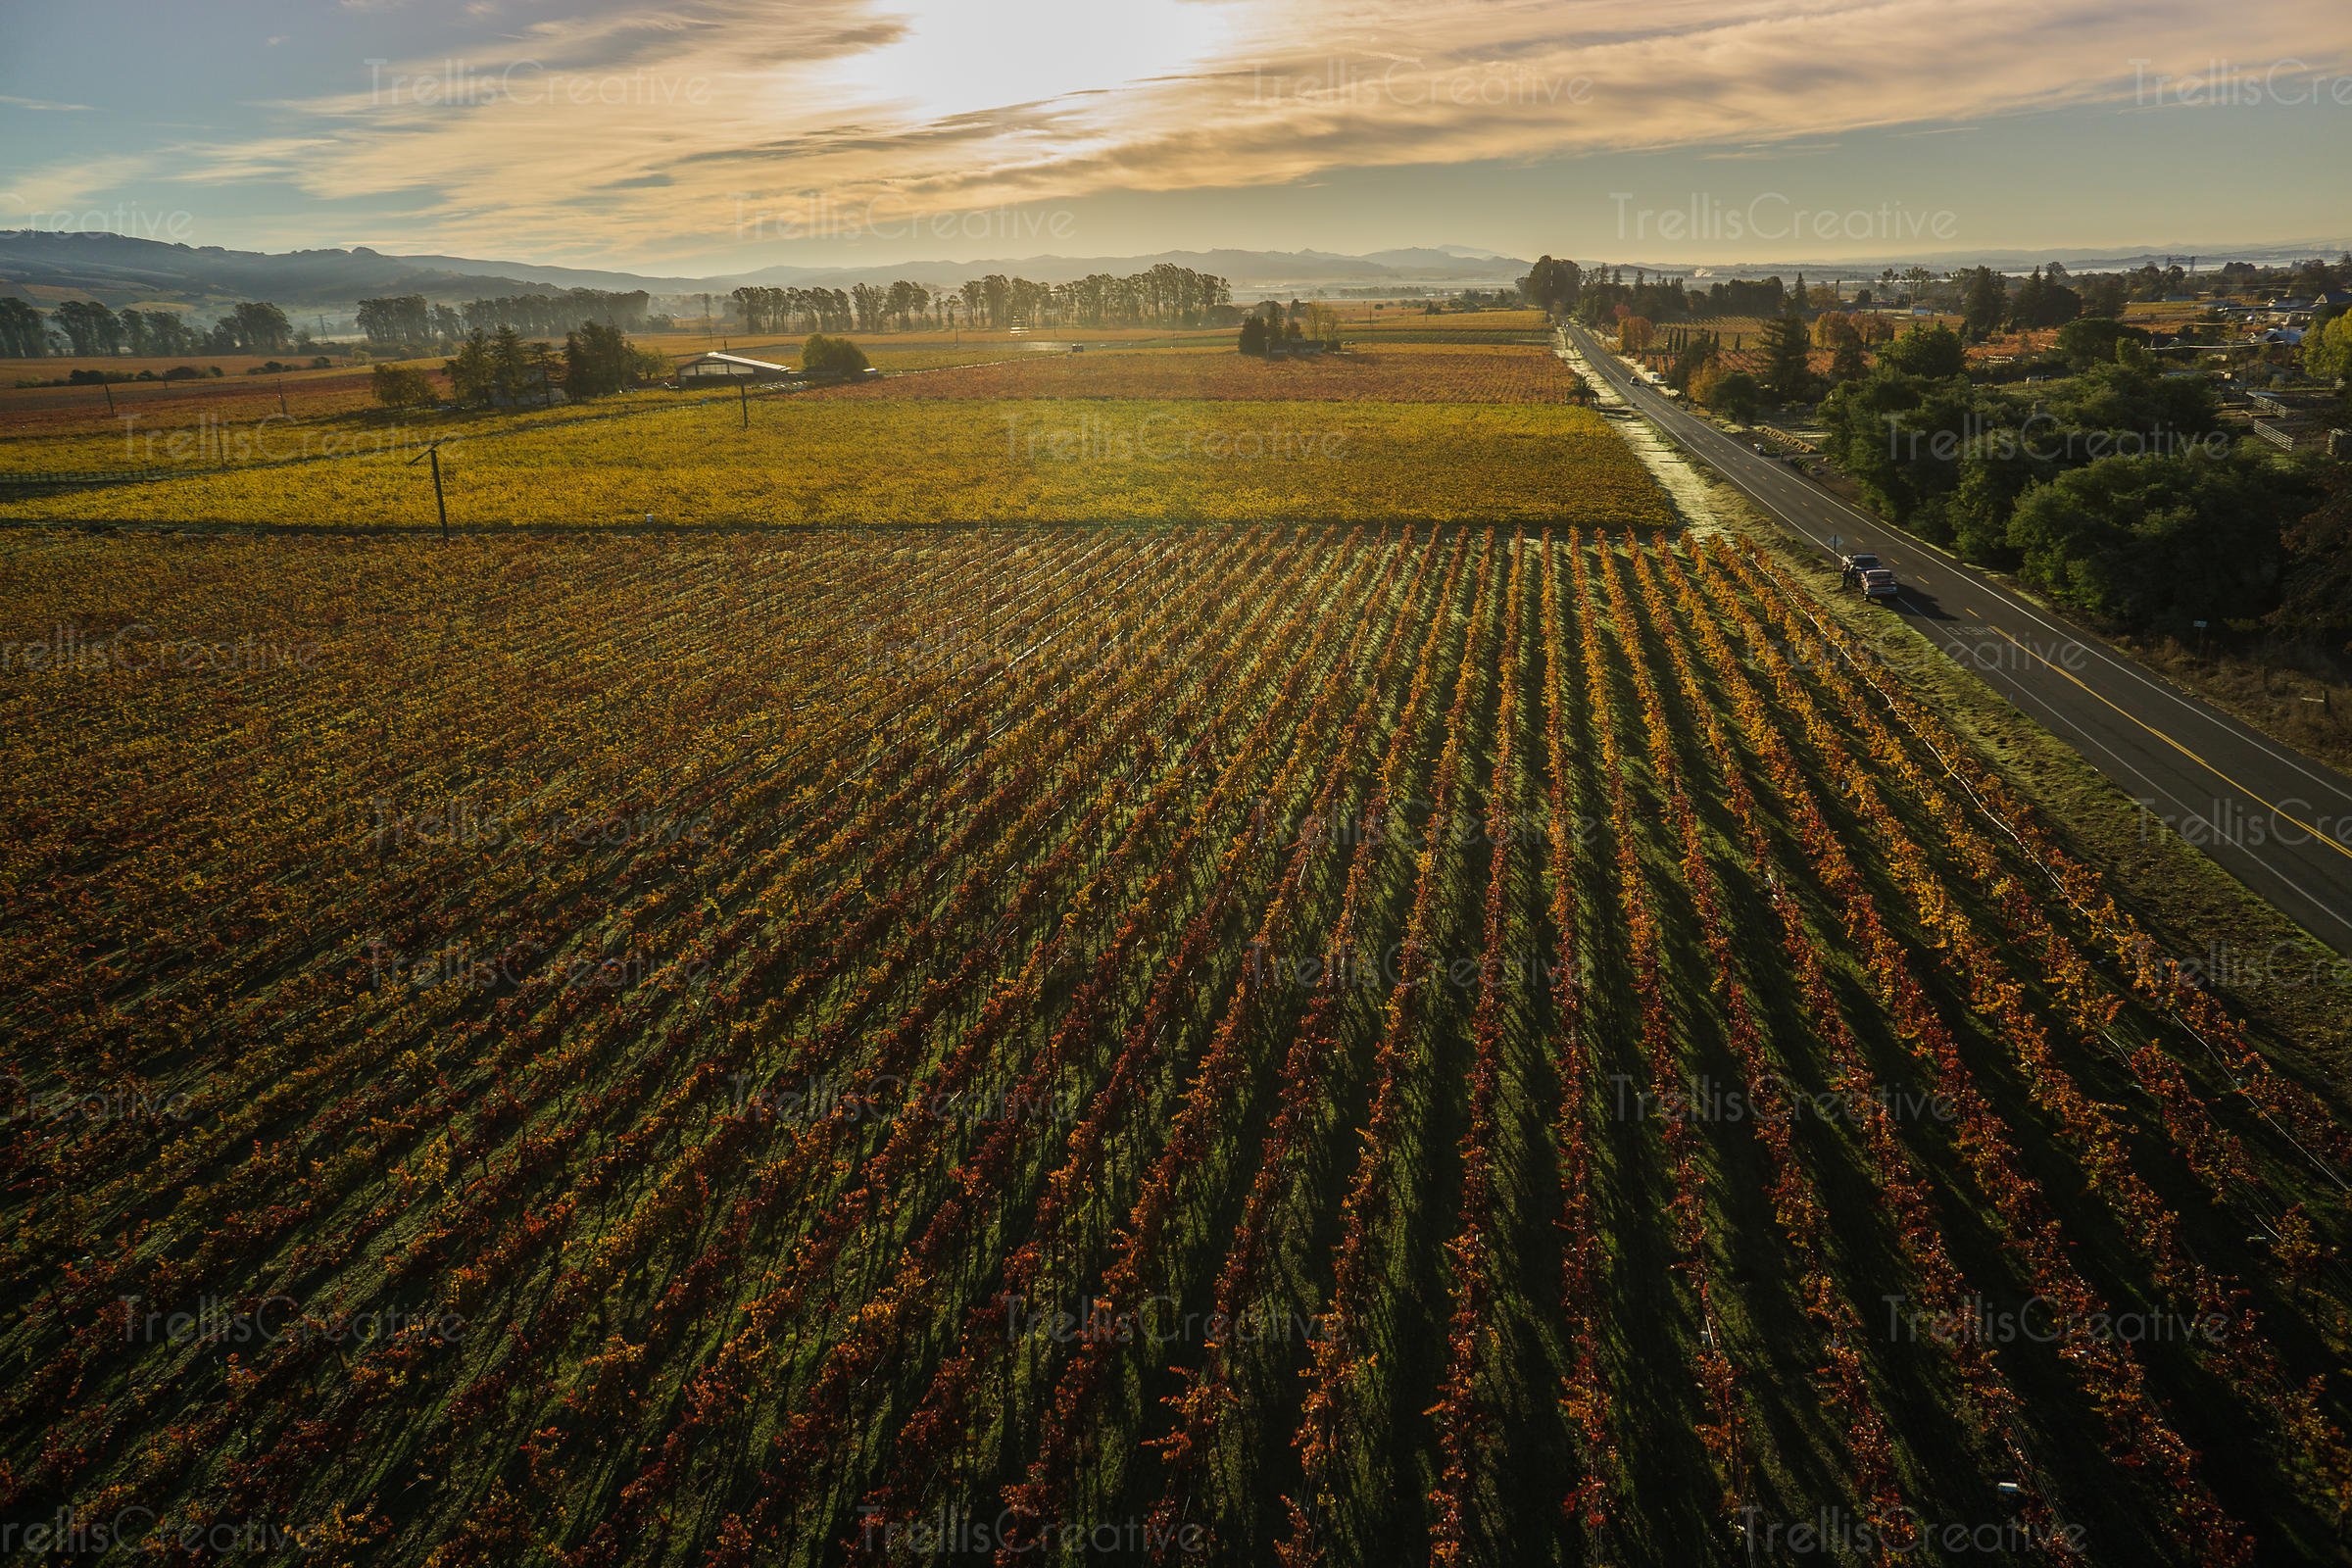 An aerial view of a road running along the vineyards with changing colors of the Fall season